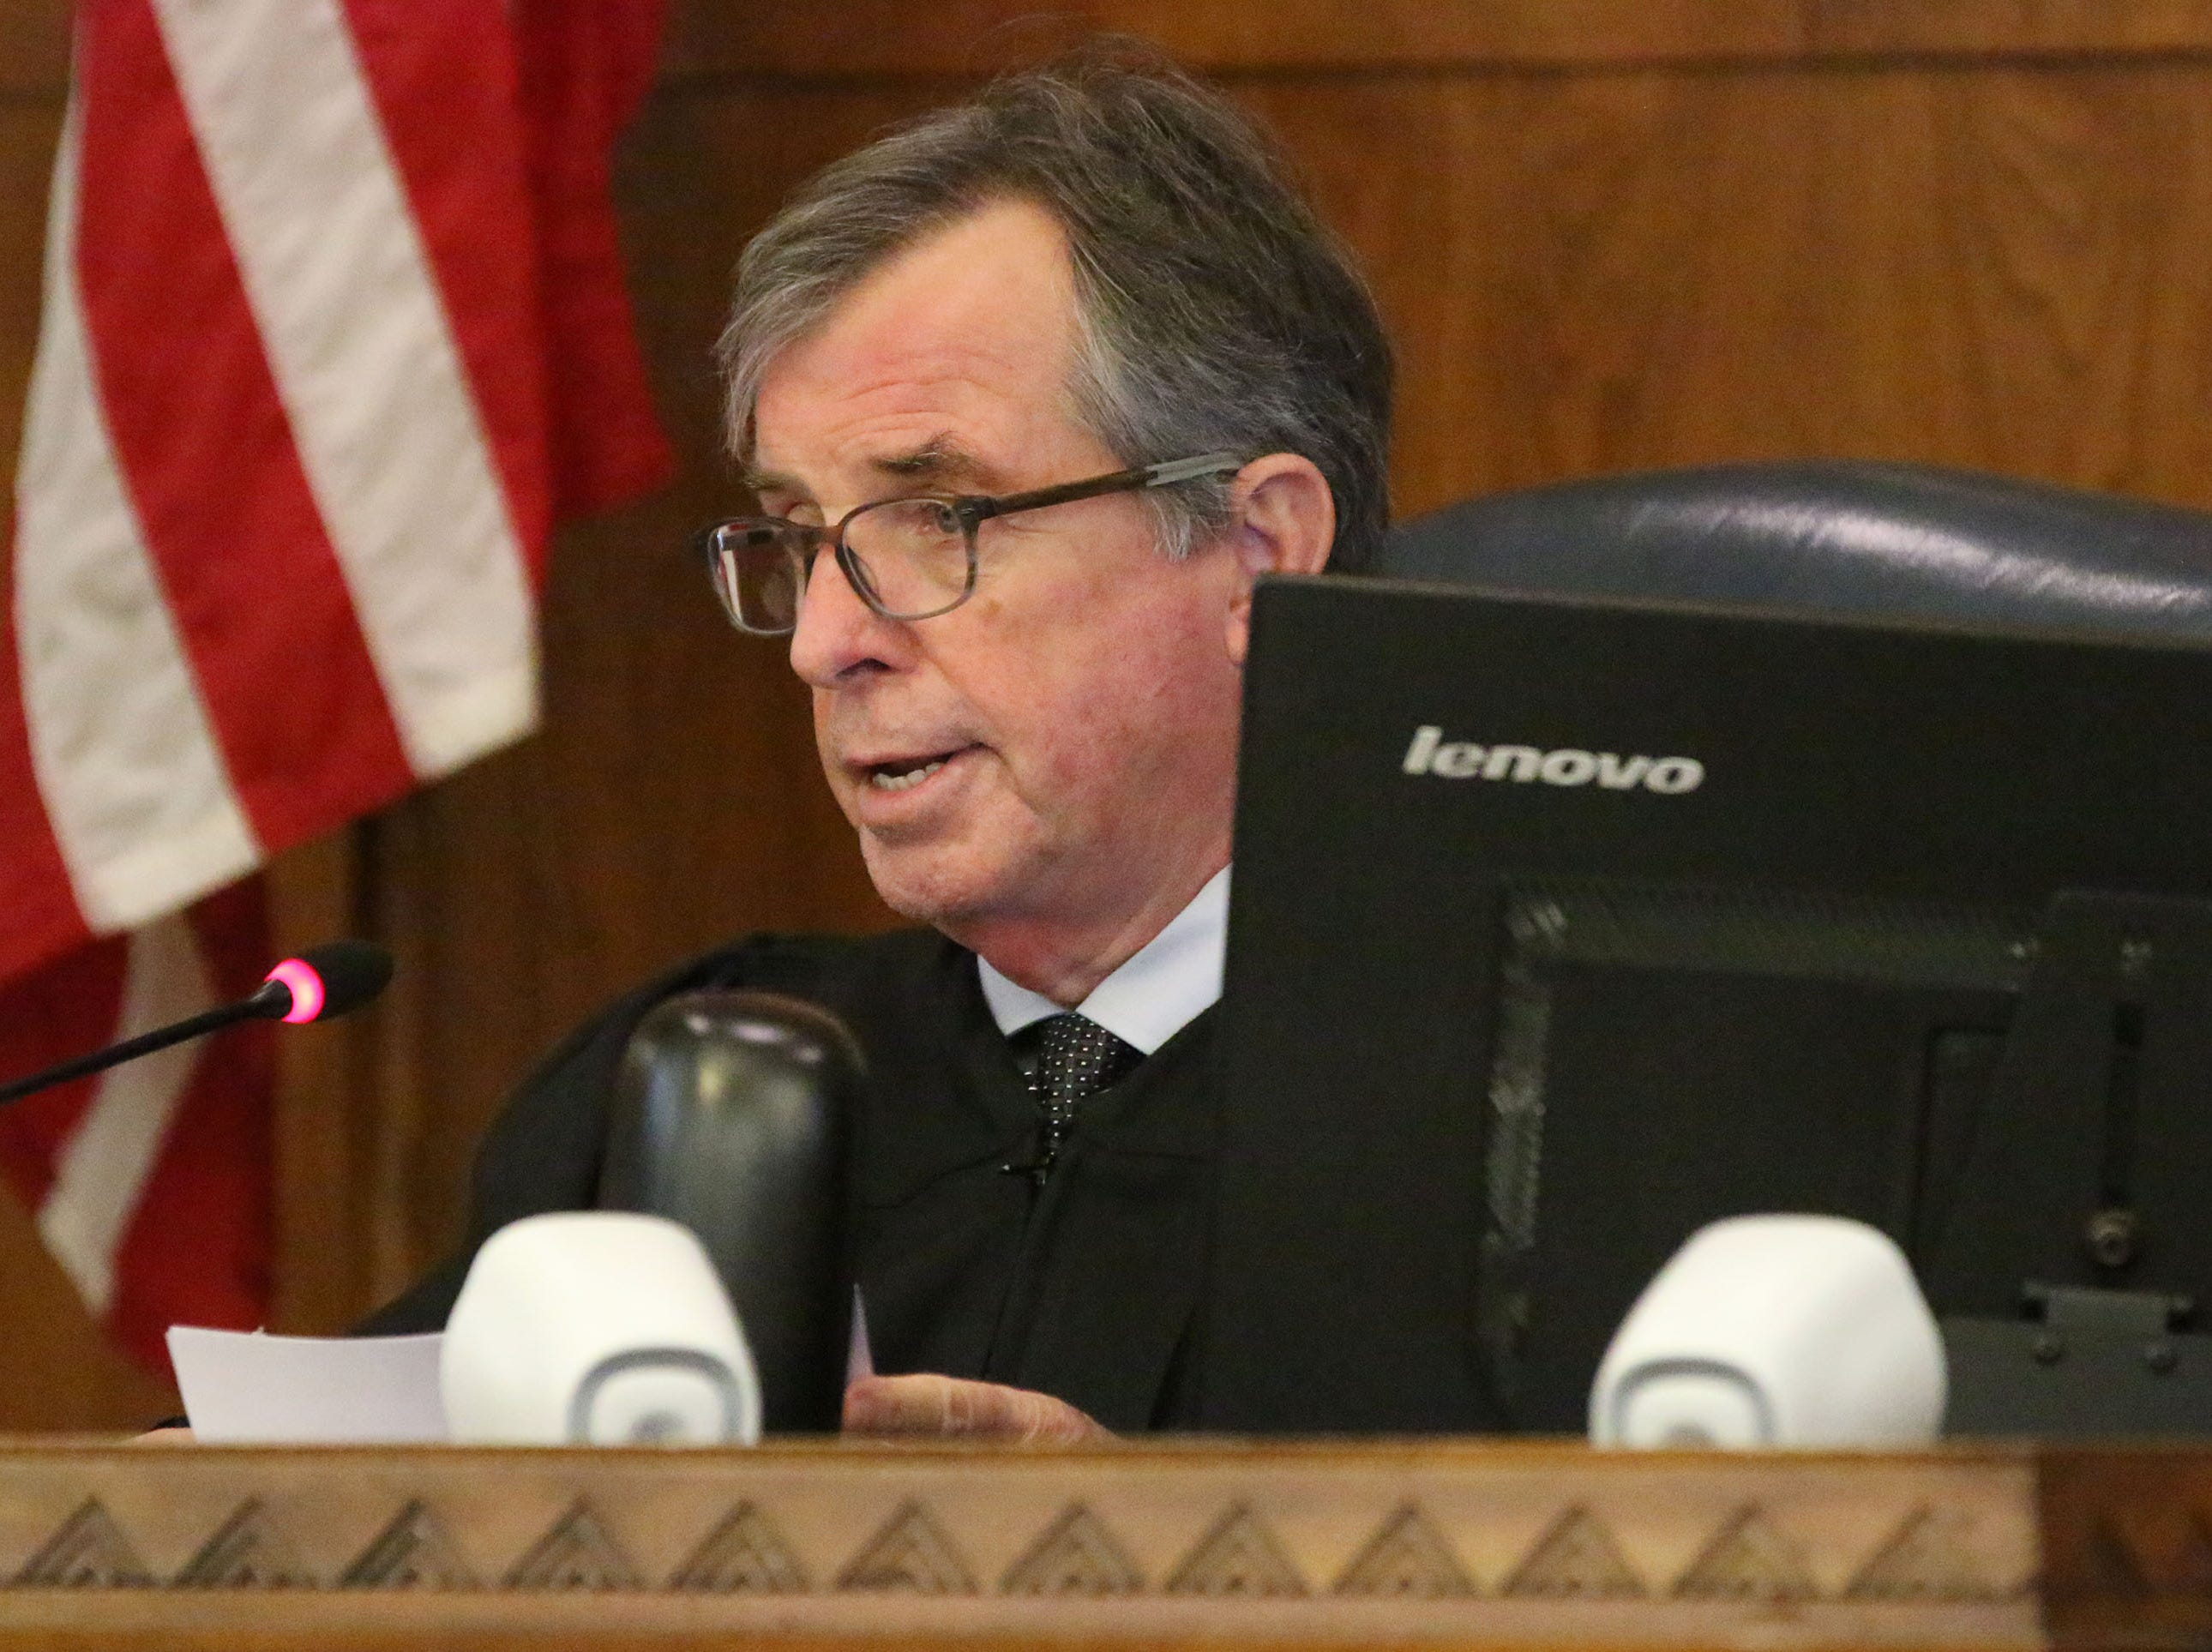 Judge L. Edward Stengel speaks during the sentencing hearing for Breanna Mikula in Sheboygan County Circuit Court Branch 1, Tuesday, October 16, 2018, in Sheboygan, Wis.